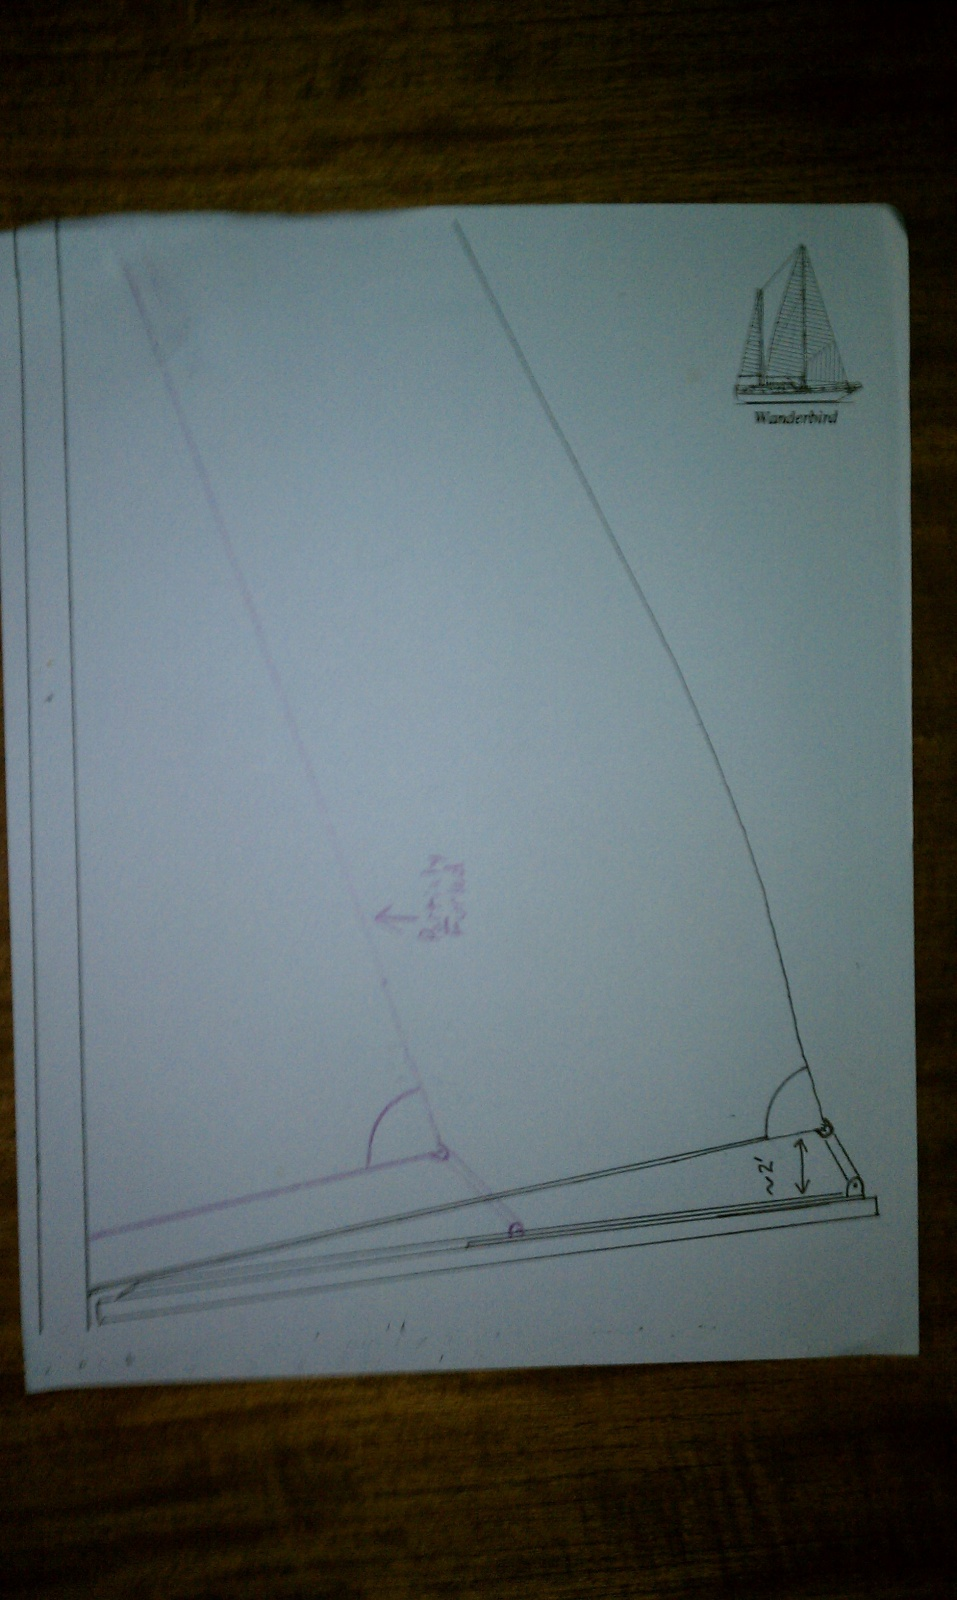 Click image for larger version  Name:sketch 006.jpg Views:111 Size:375.2 KB ID:34280